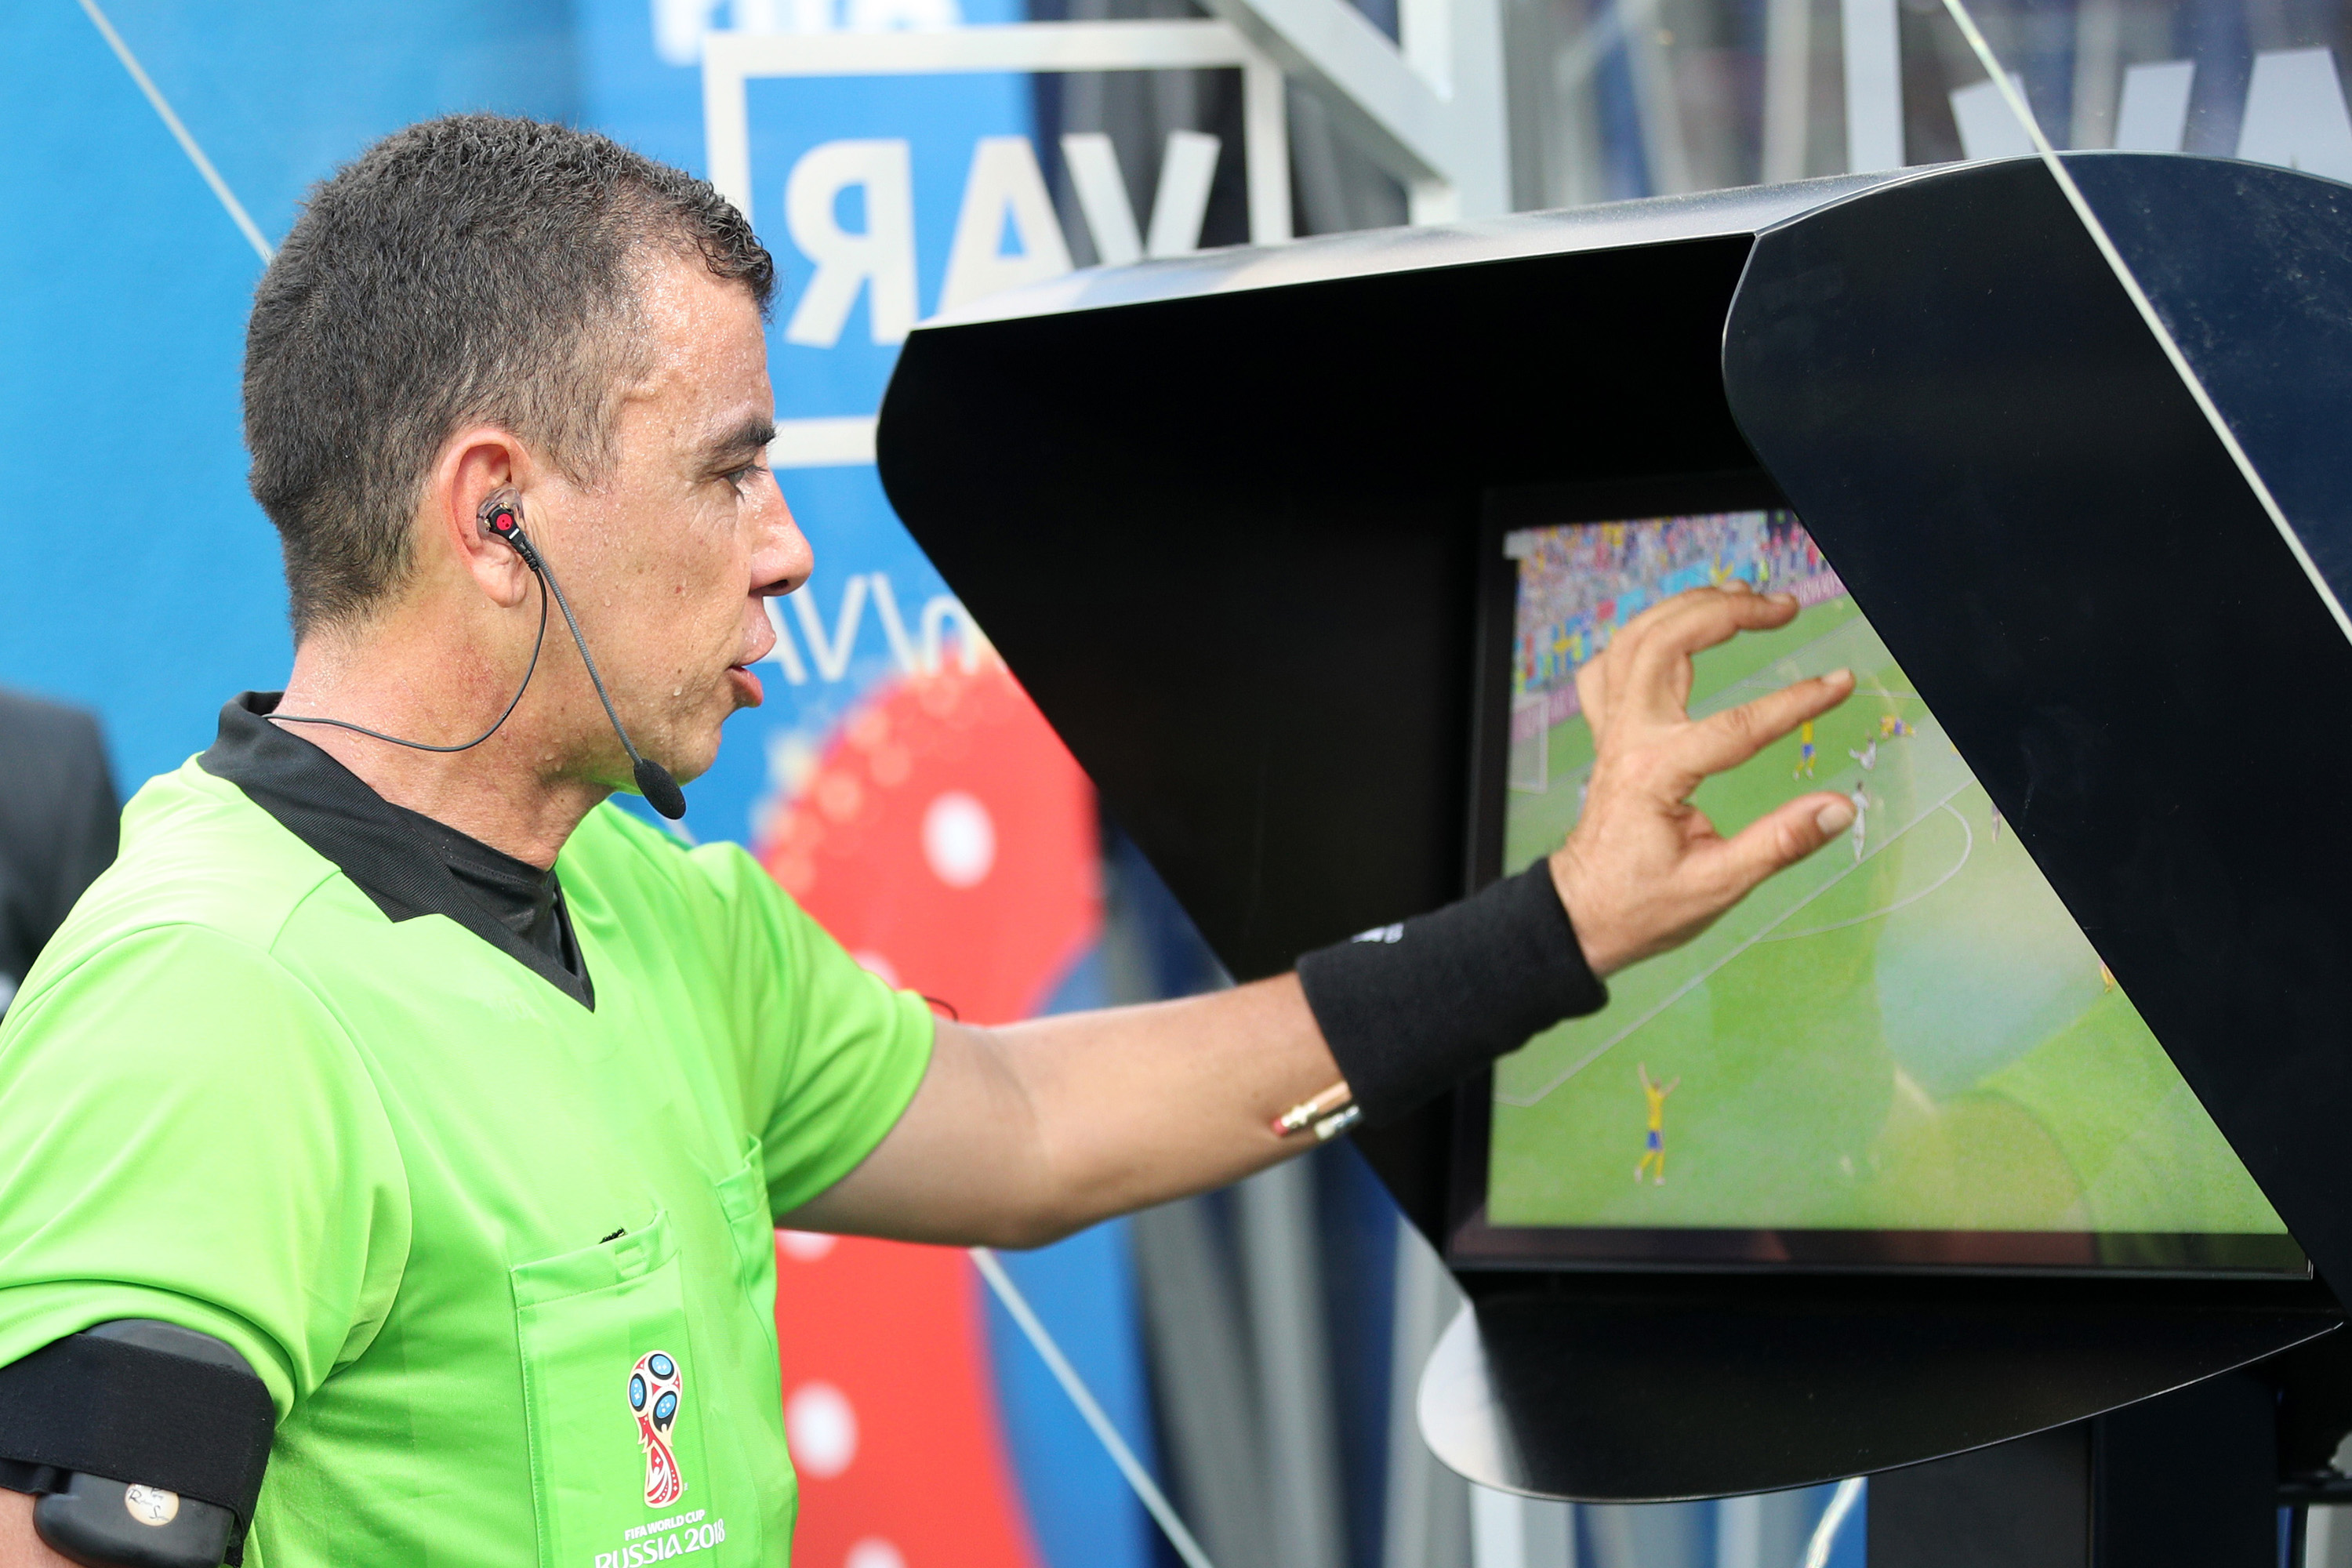 NIZHNIY NOVGOROD, RUSSIA - JUNE 18: Referee Joel Aguilar reviews the VAR footage, before awarding Sweden a penalty during the 2018 FIFA World Cup Russia group F match between Sweden and Korea Republic at Nizhniy Novgorod Stadium on June 18, 2018 in Nizhniy Novgorod, Russia. (Photo by Adam Pretty - FIFA/FIFA via Getty Images)